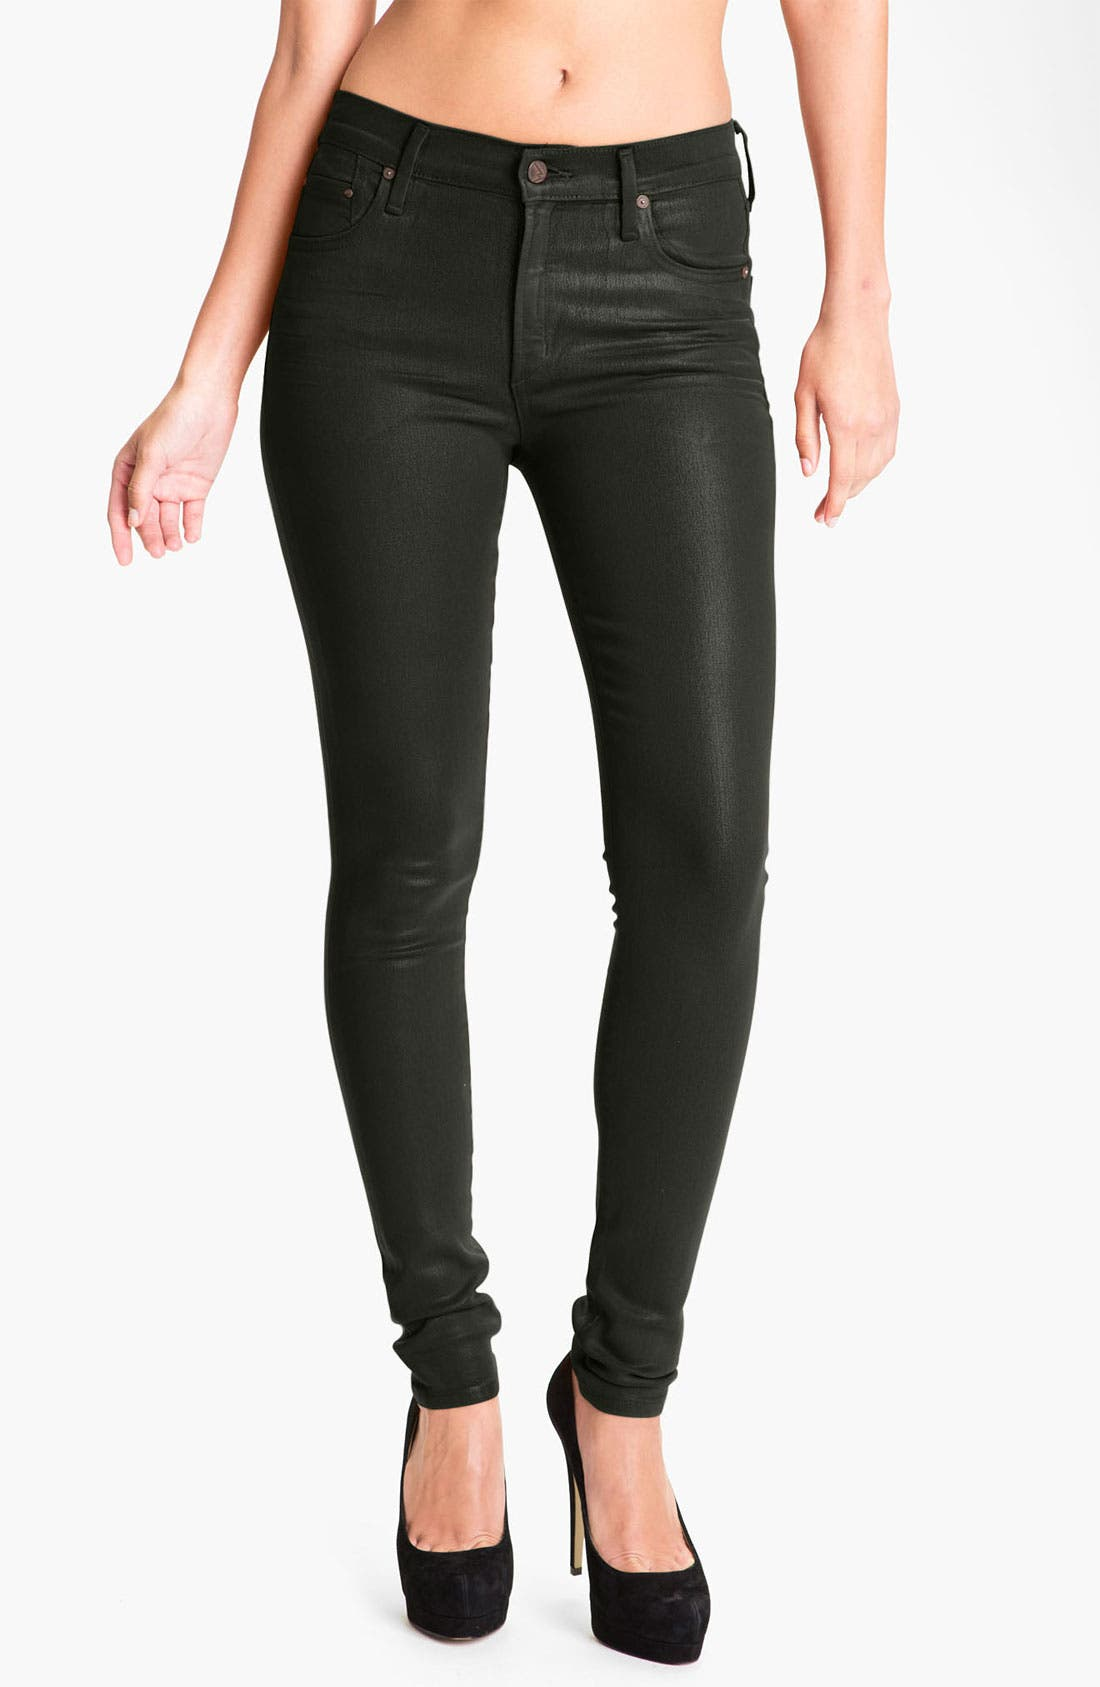 Alternate Image 1 Selected - Citizens of Humanity 'Rocket' Skinny Leatherette Jeans (Dark Ivy)